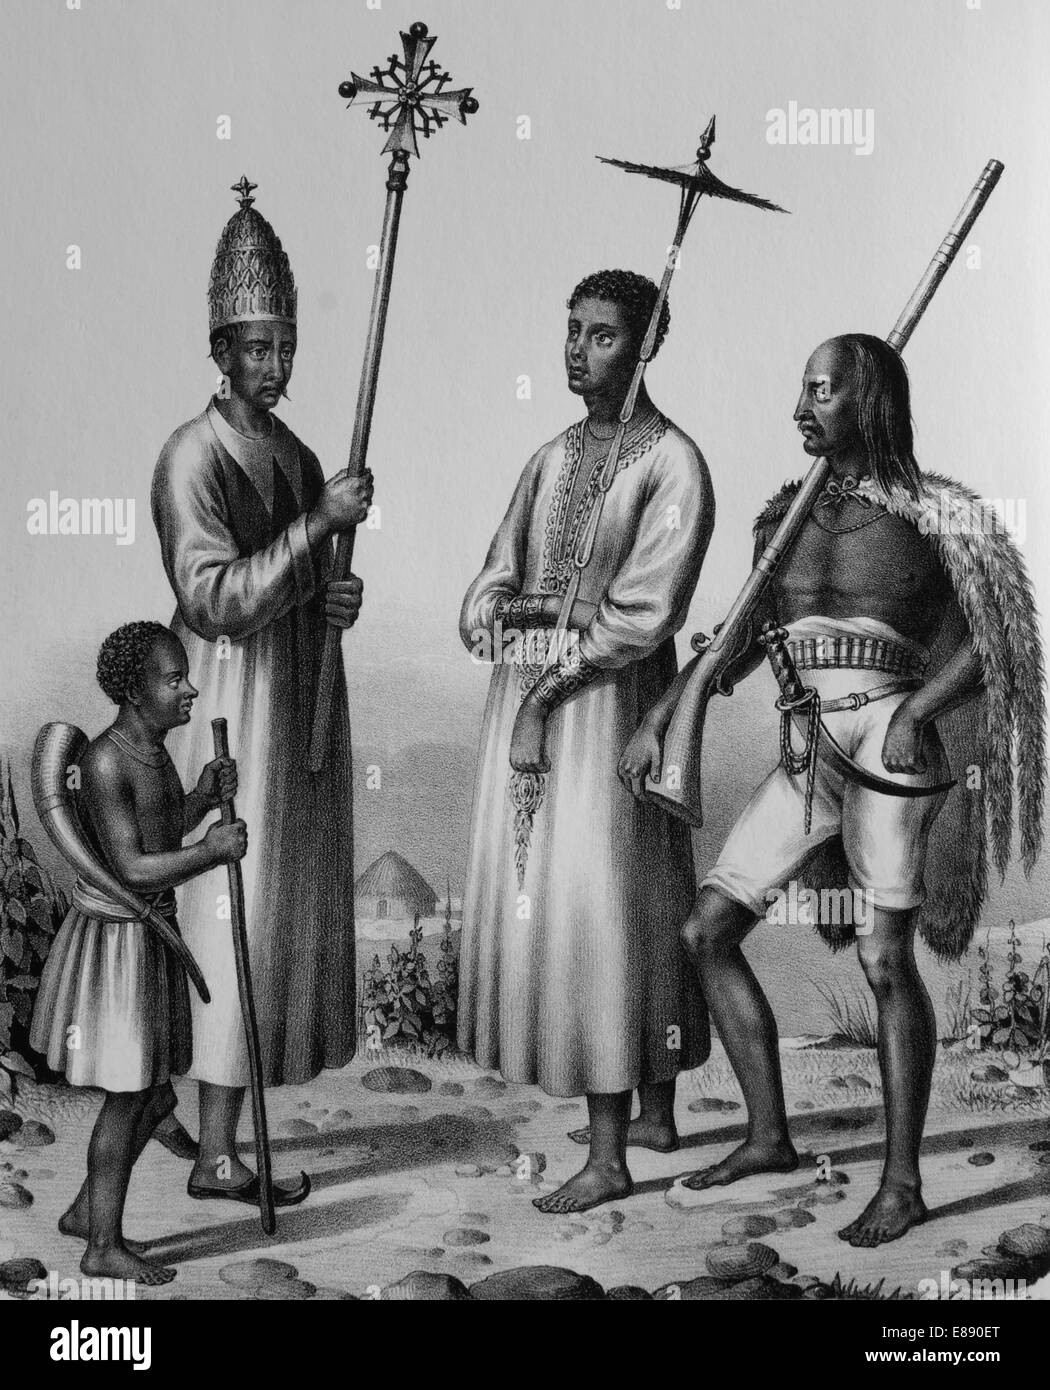 Procession. Ethiopian Orthodox Tewahedo Church. Abyssinian (today Ethiopia), 1880. Engraving. - Stock Image